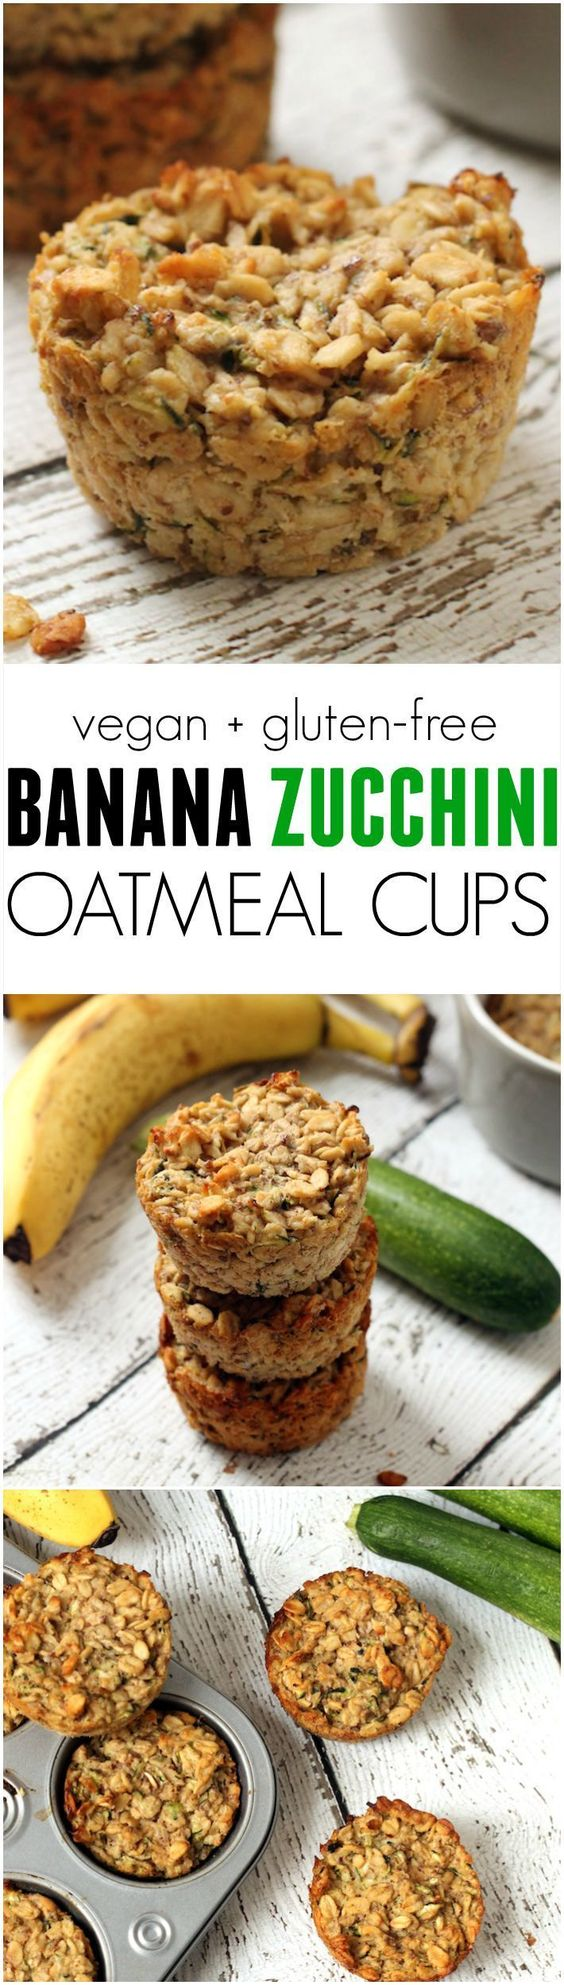 Banana Zucchini Oatmeal Cups + 5 Healthy Zucchini Recipes | Hummusapien | #recipe #Healthy @xhealthyrecipex |